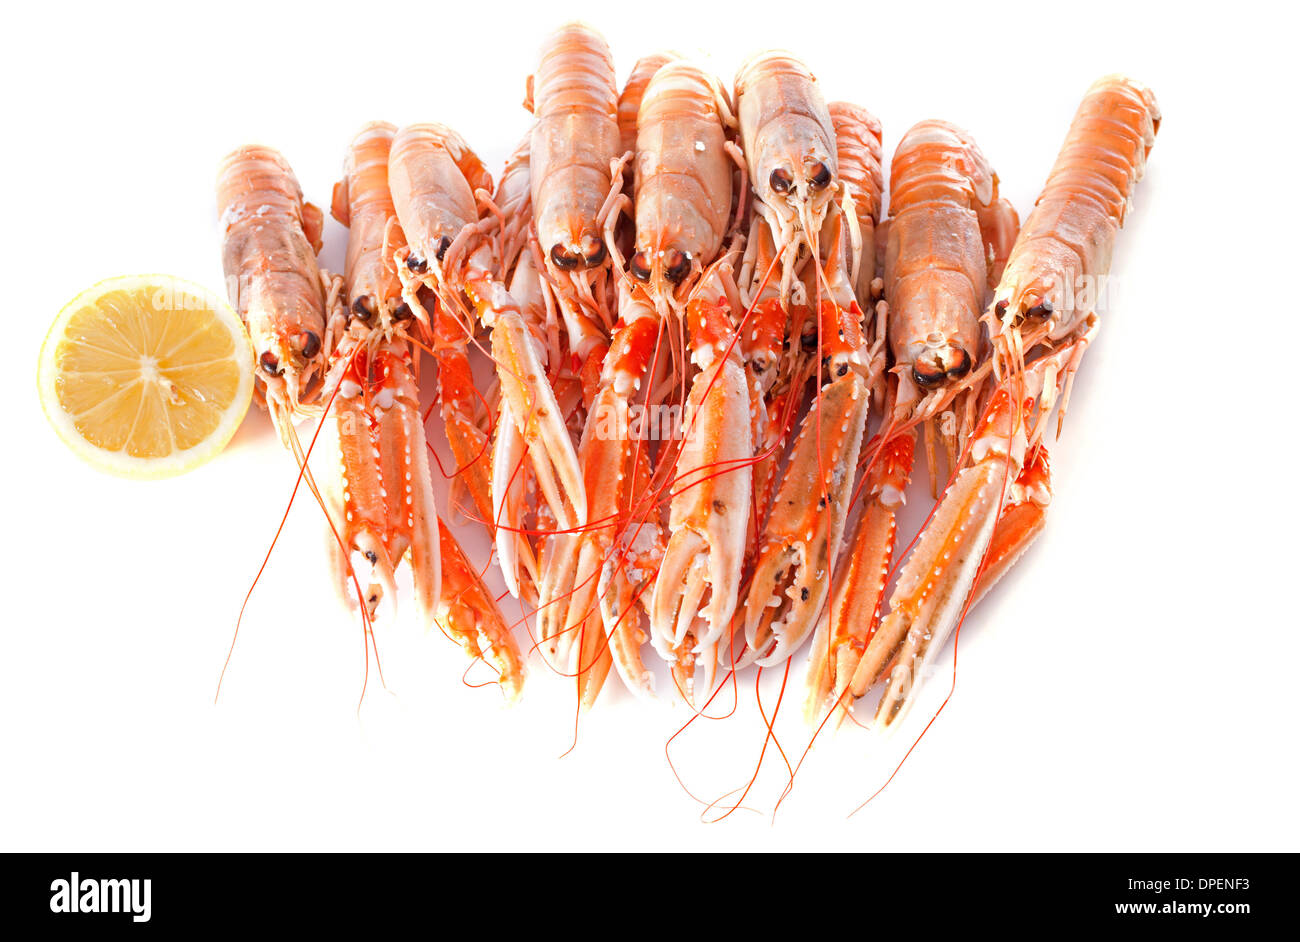 Dublin Bay Prawn in front of white background - Stock Image